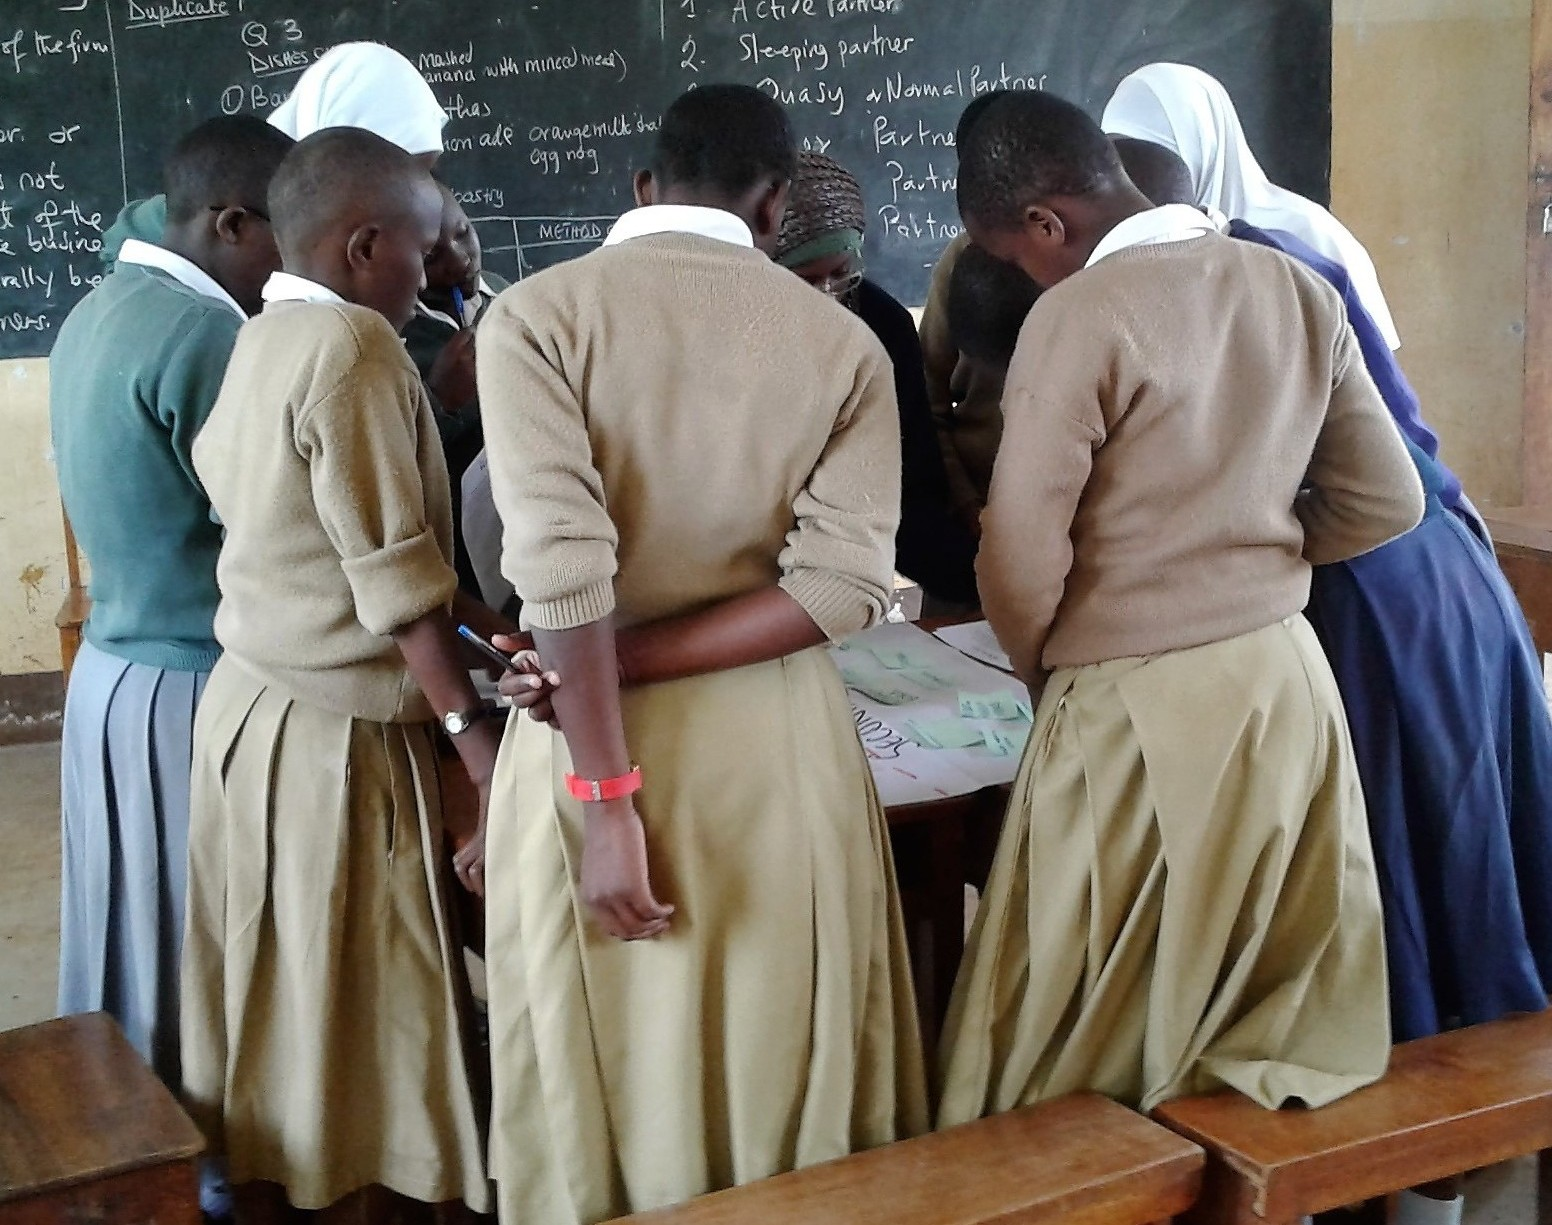 During the research, girls were asked to identify and rank the barriers they face to staying in school.